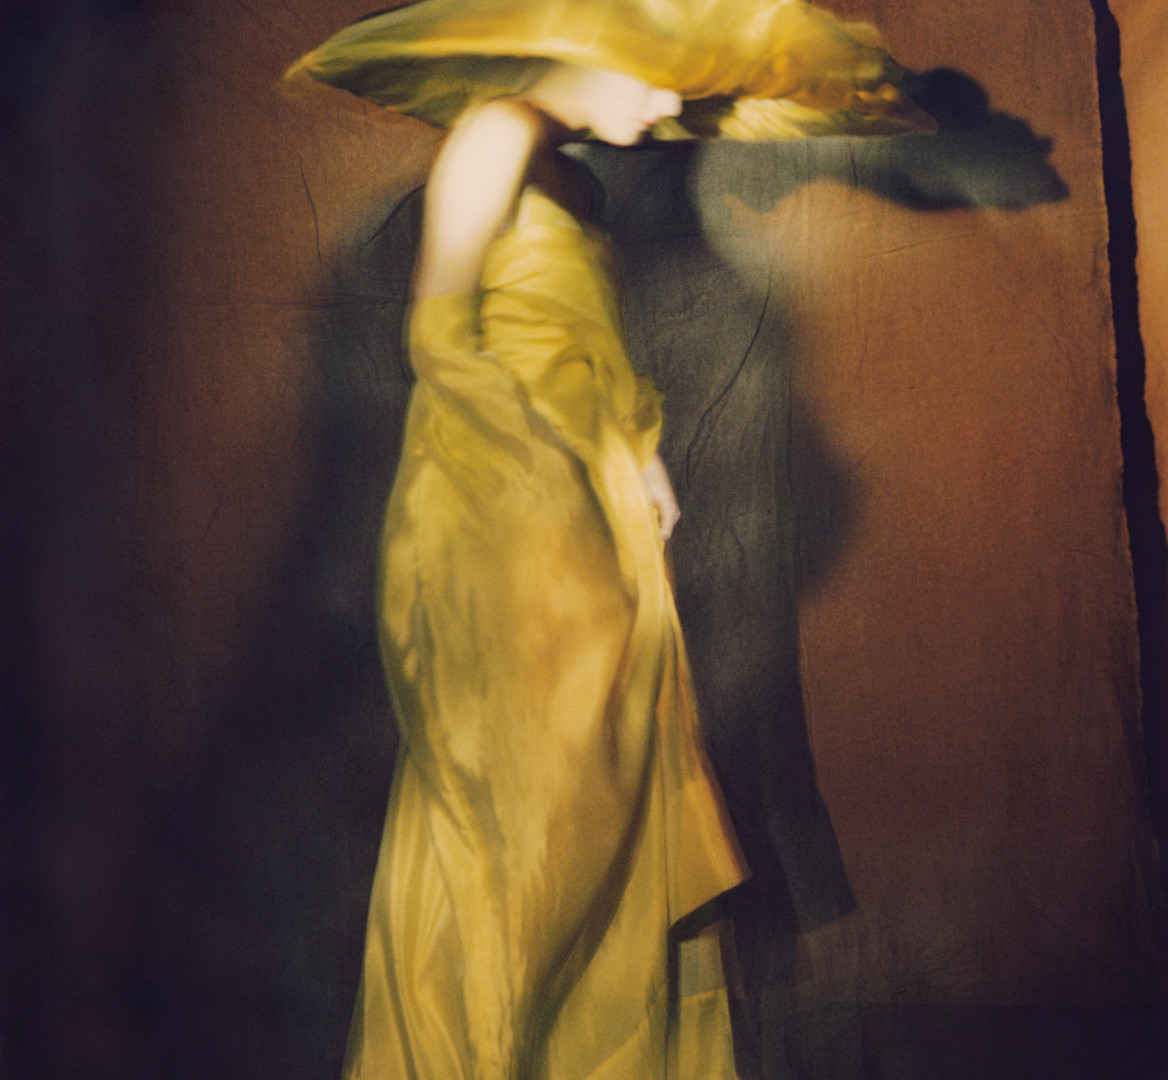 Paolo Roversi, Guinevere in yellow dress, Paris, 1996